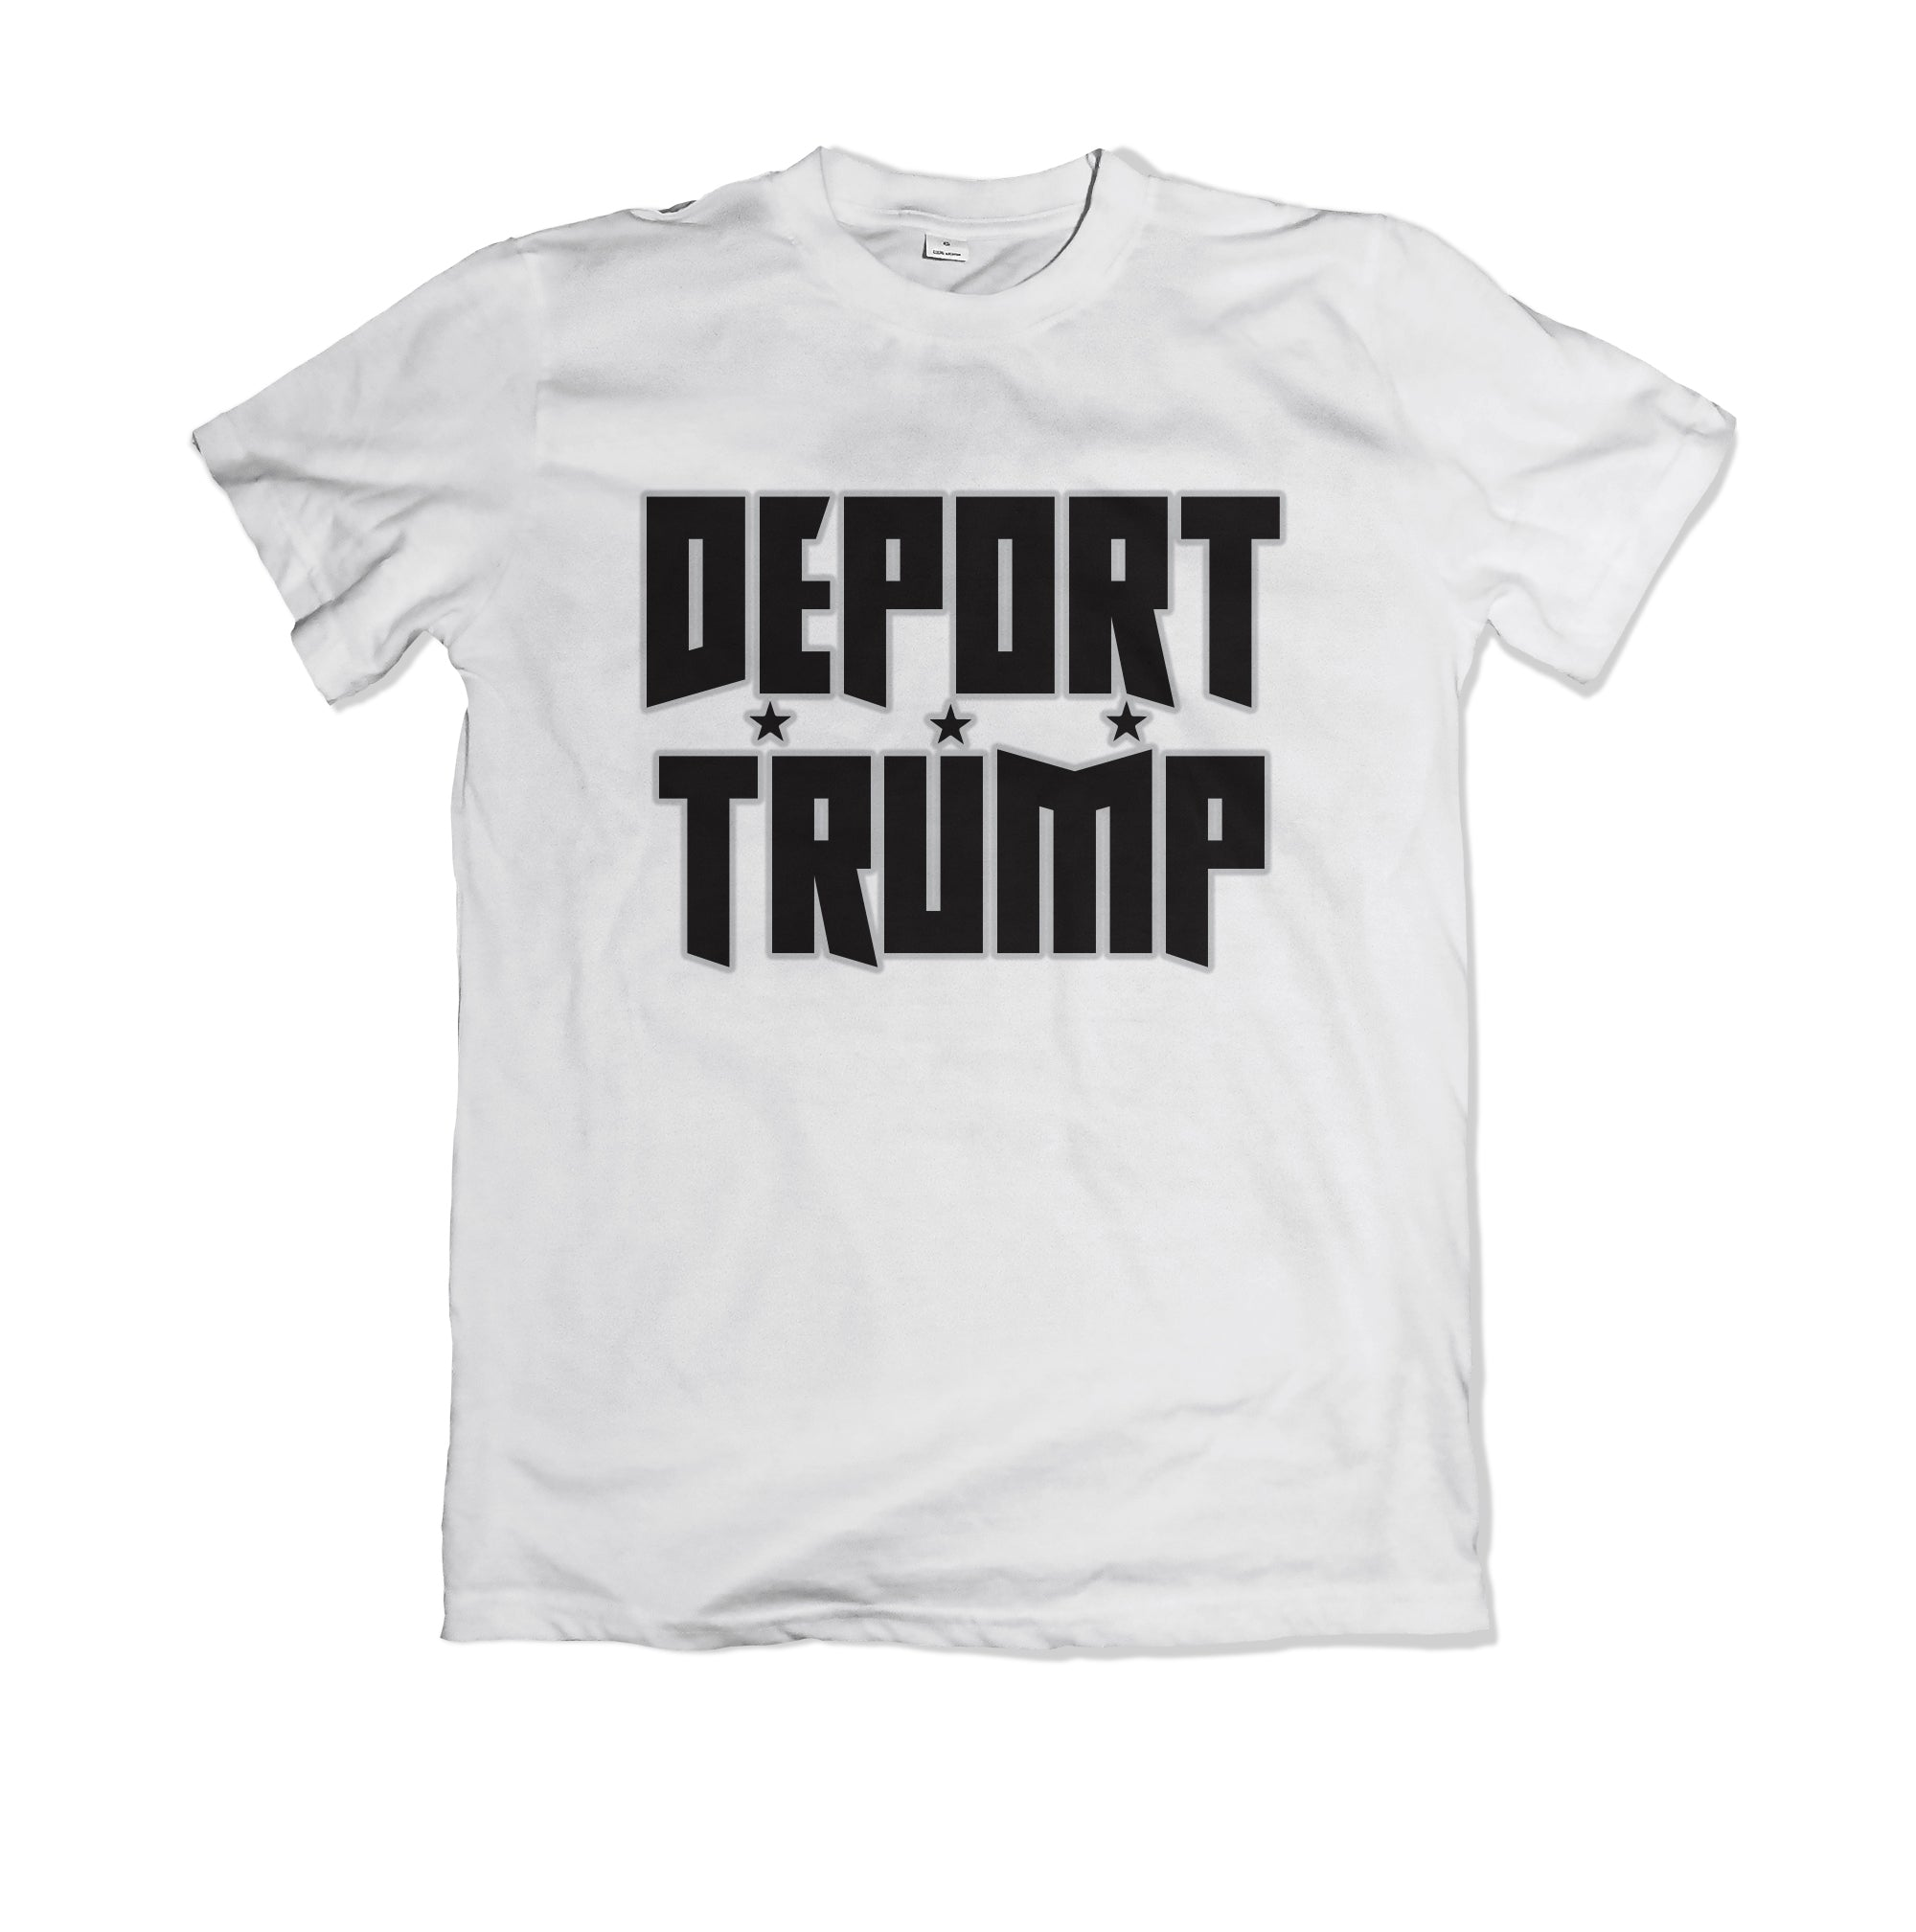 Deport Trump Custom T-Shirt - TOPS, TSS CUSTOM GRPHX, SNEAKER STUDIO, GOLDEN GILT, DESIGN BY TSS